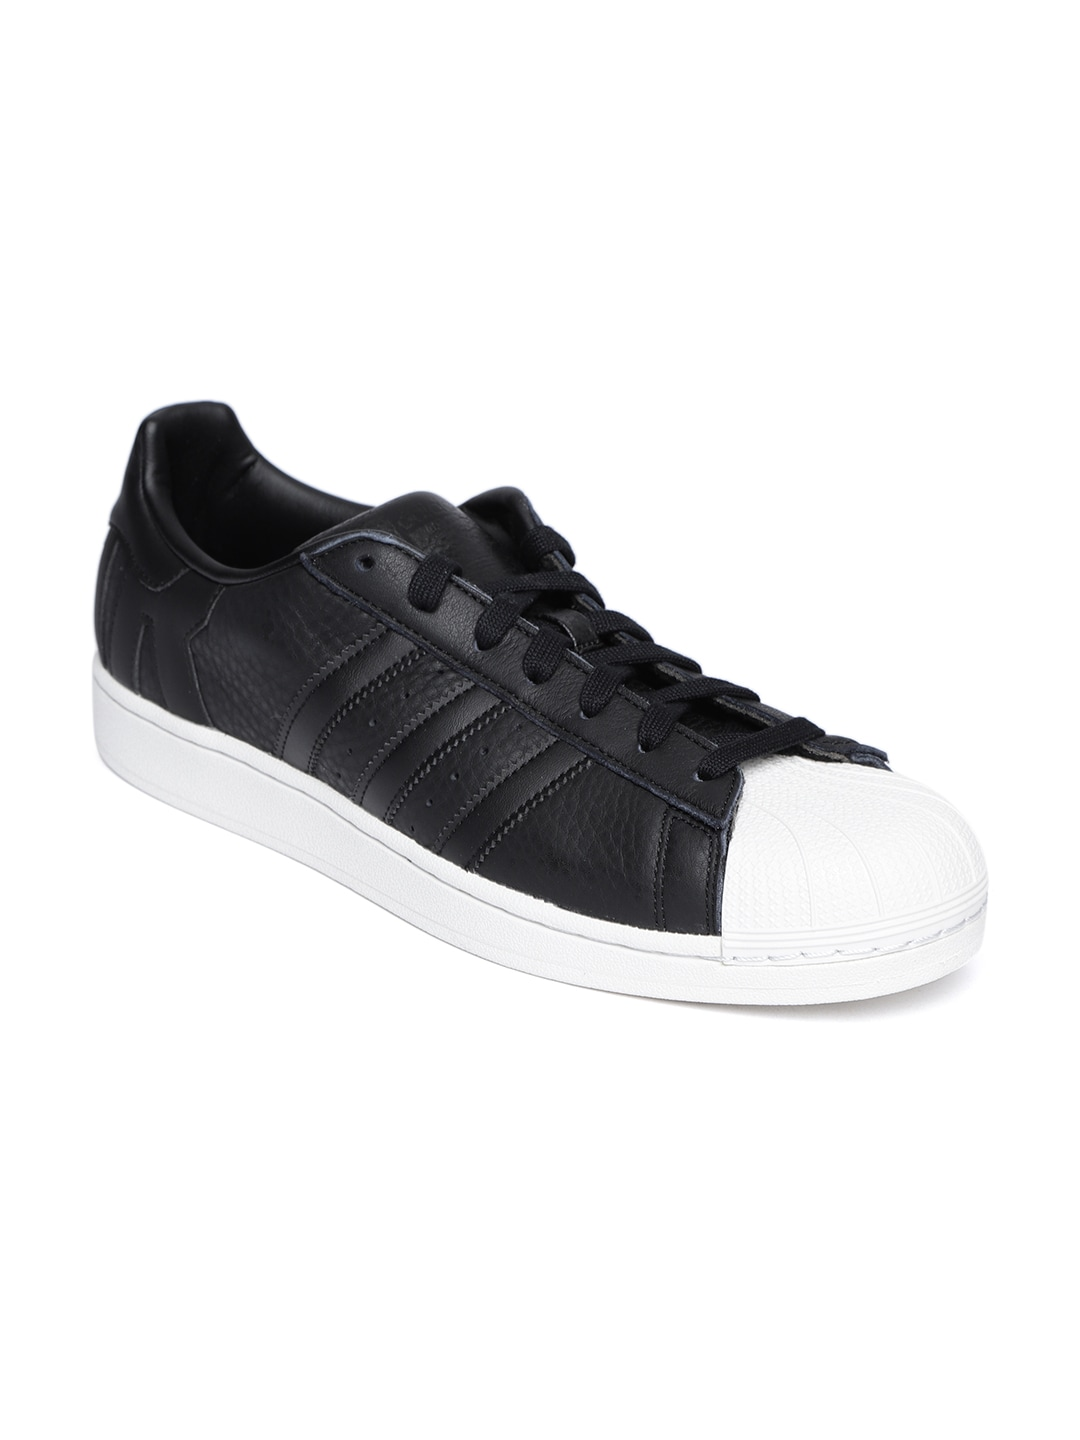 detailed pictures d1213 242f0 Adidas Superstar Shoes - Buy Adidas Superstar Shoes Online - Myntra